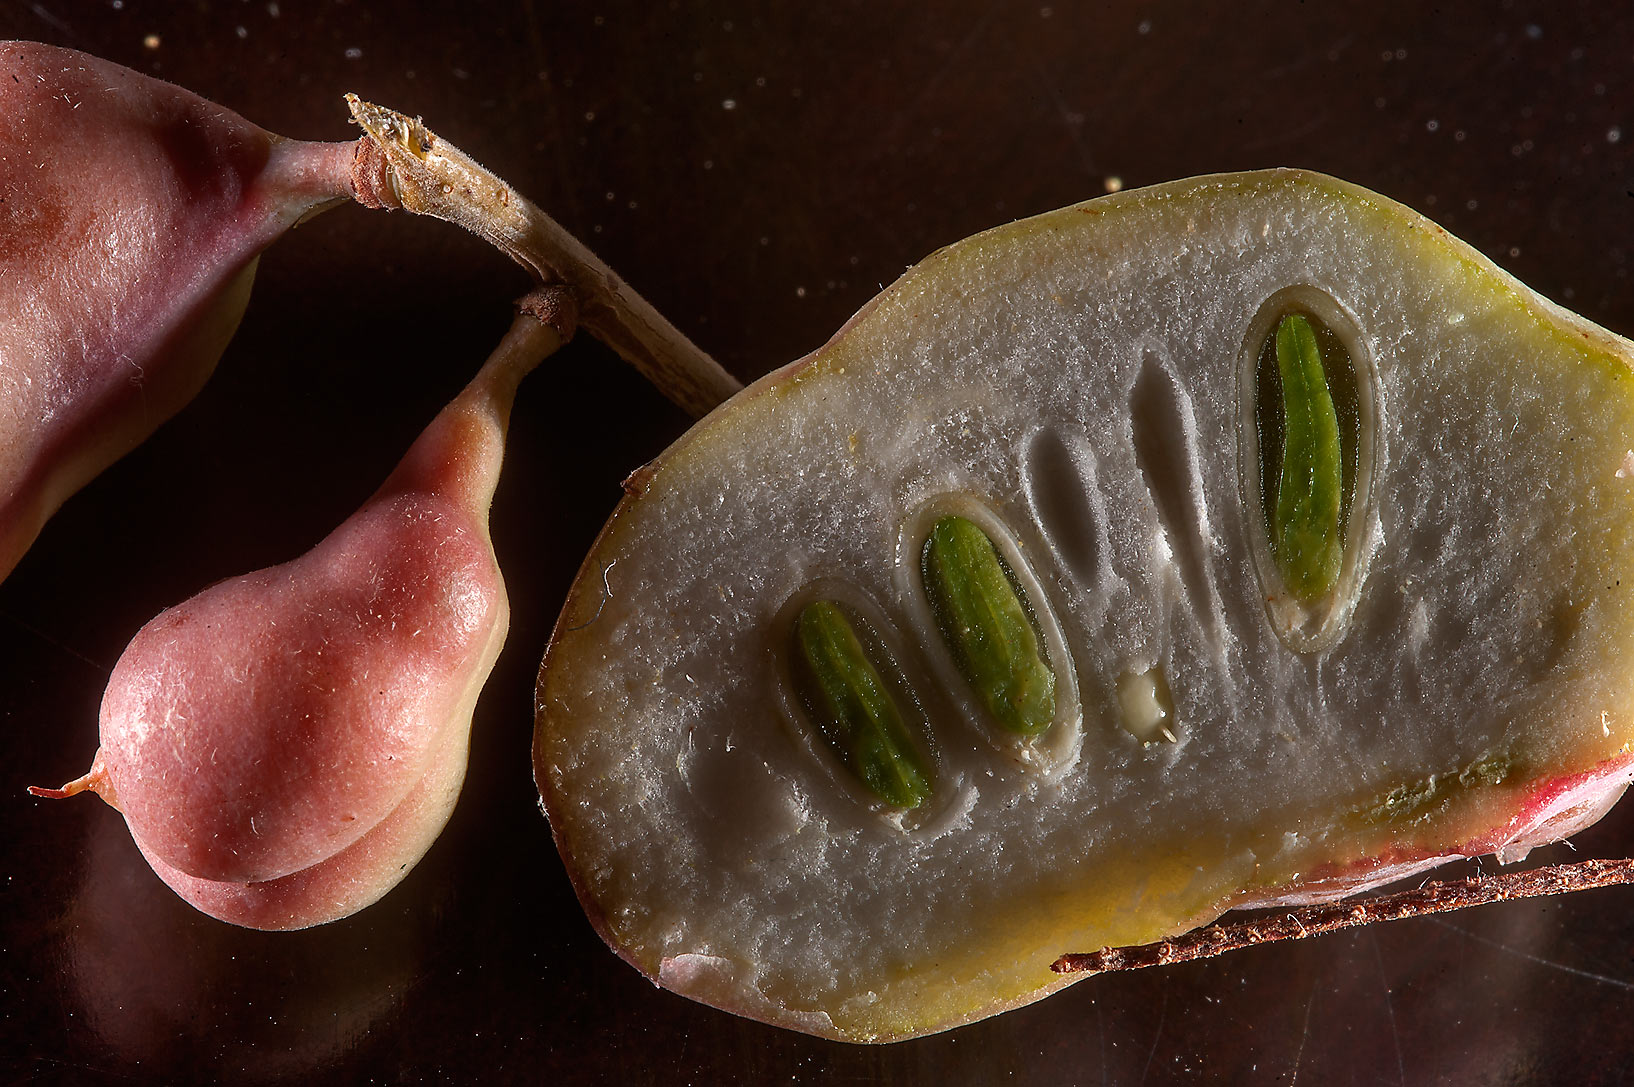 Dissected pod with seeds of Syrian mesquite...RAFRS) near Al Zubara Rd.. Qatar